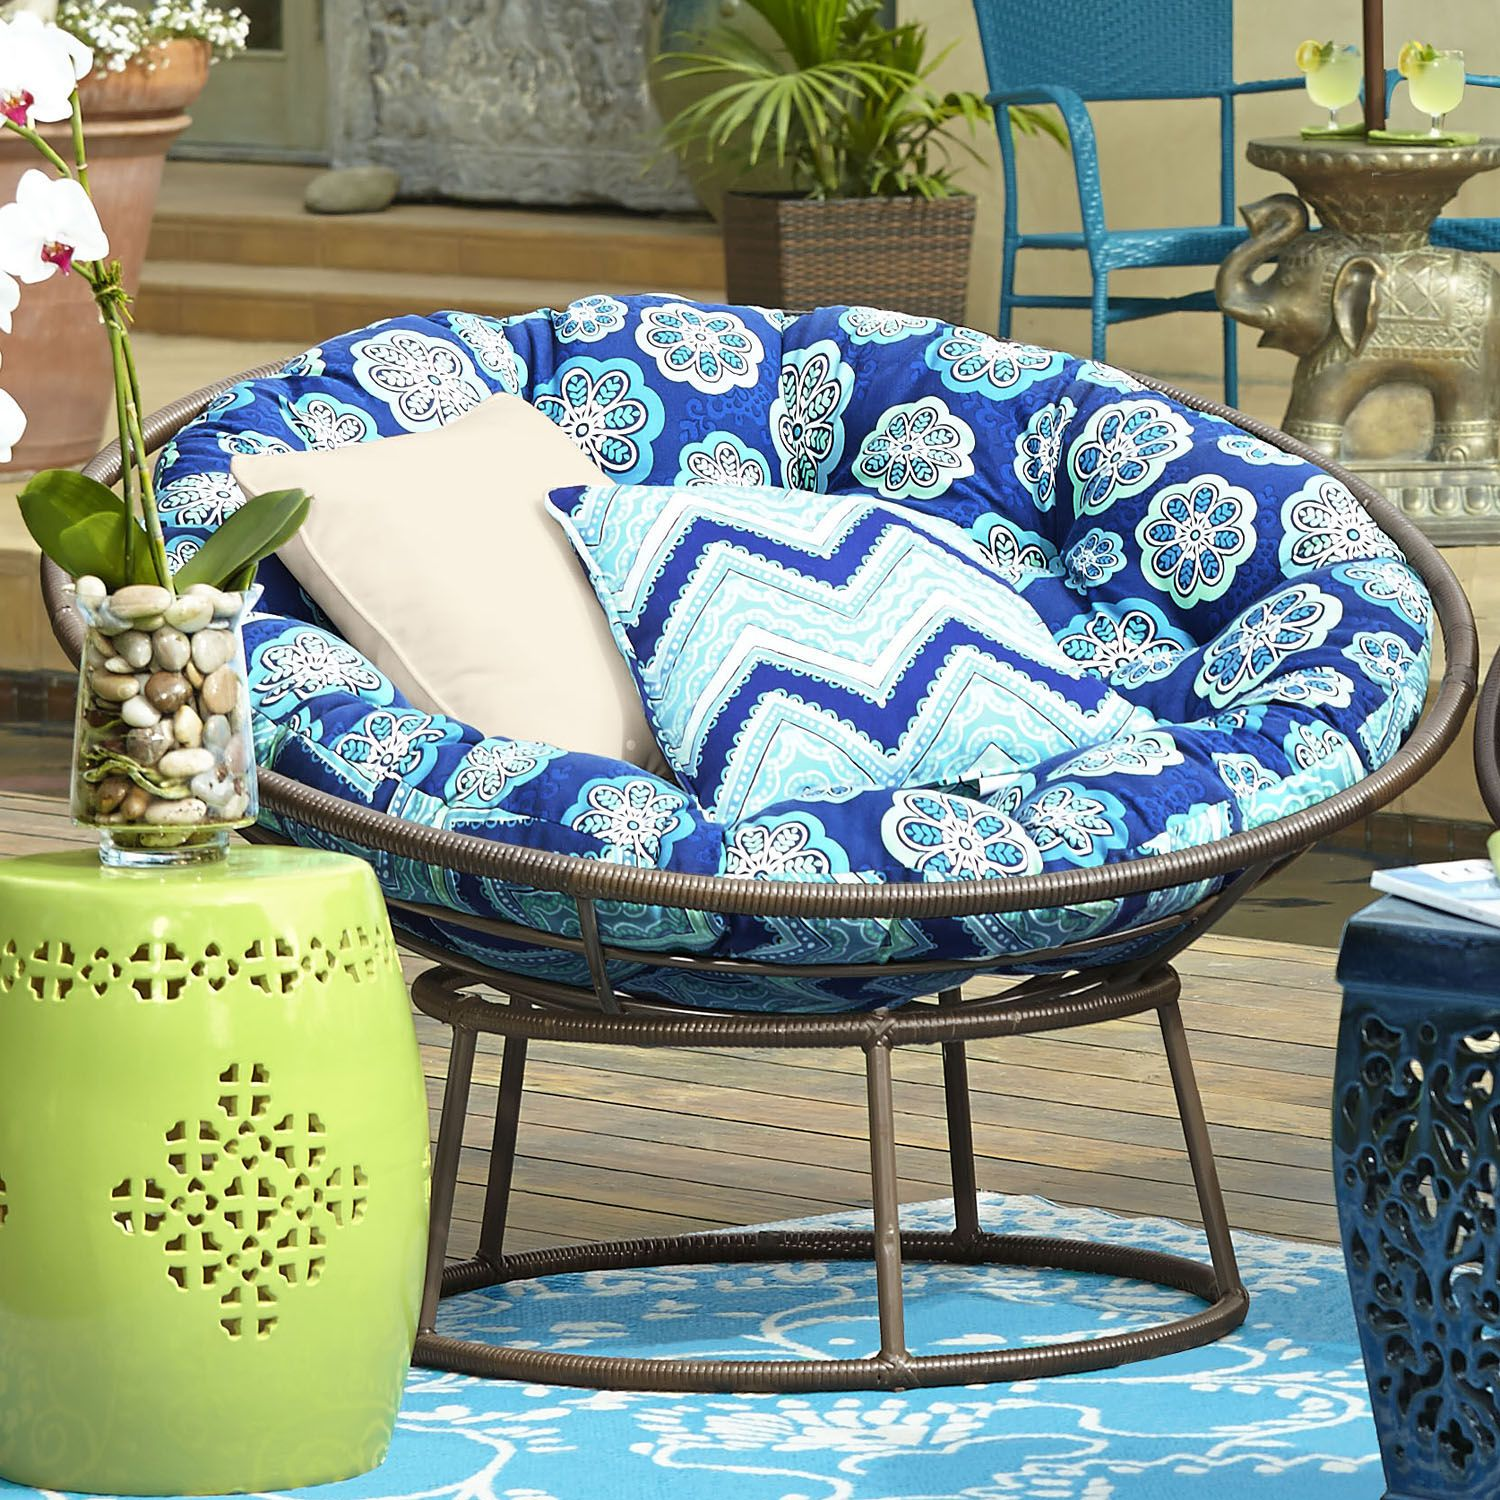 Must get an outdoor cushion for the papasan chair & give it some outdoor paint! Would be awesome for the porch!!